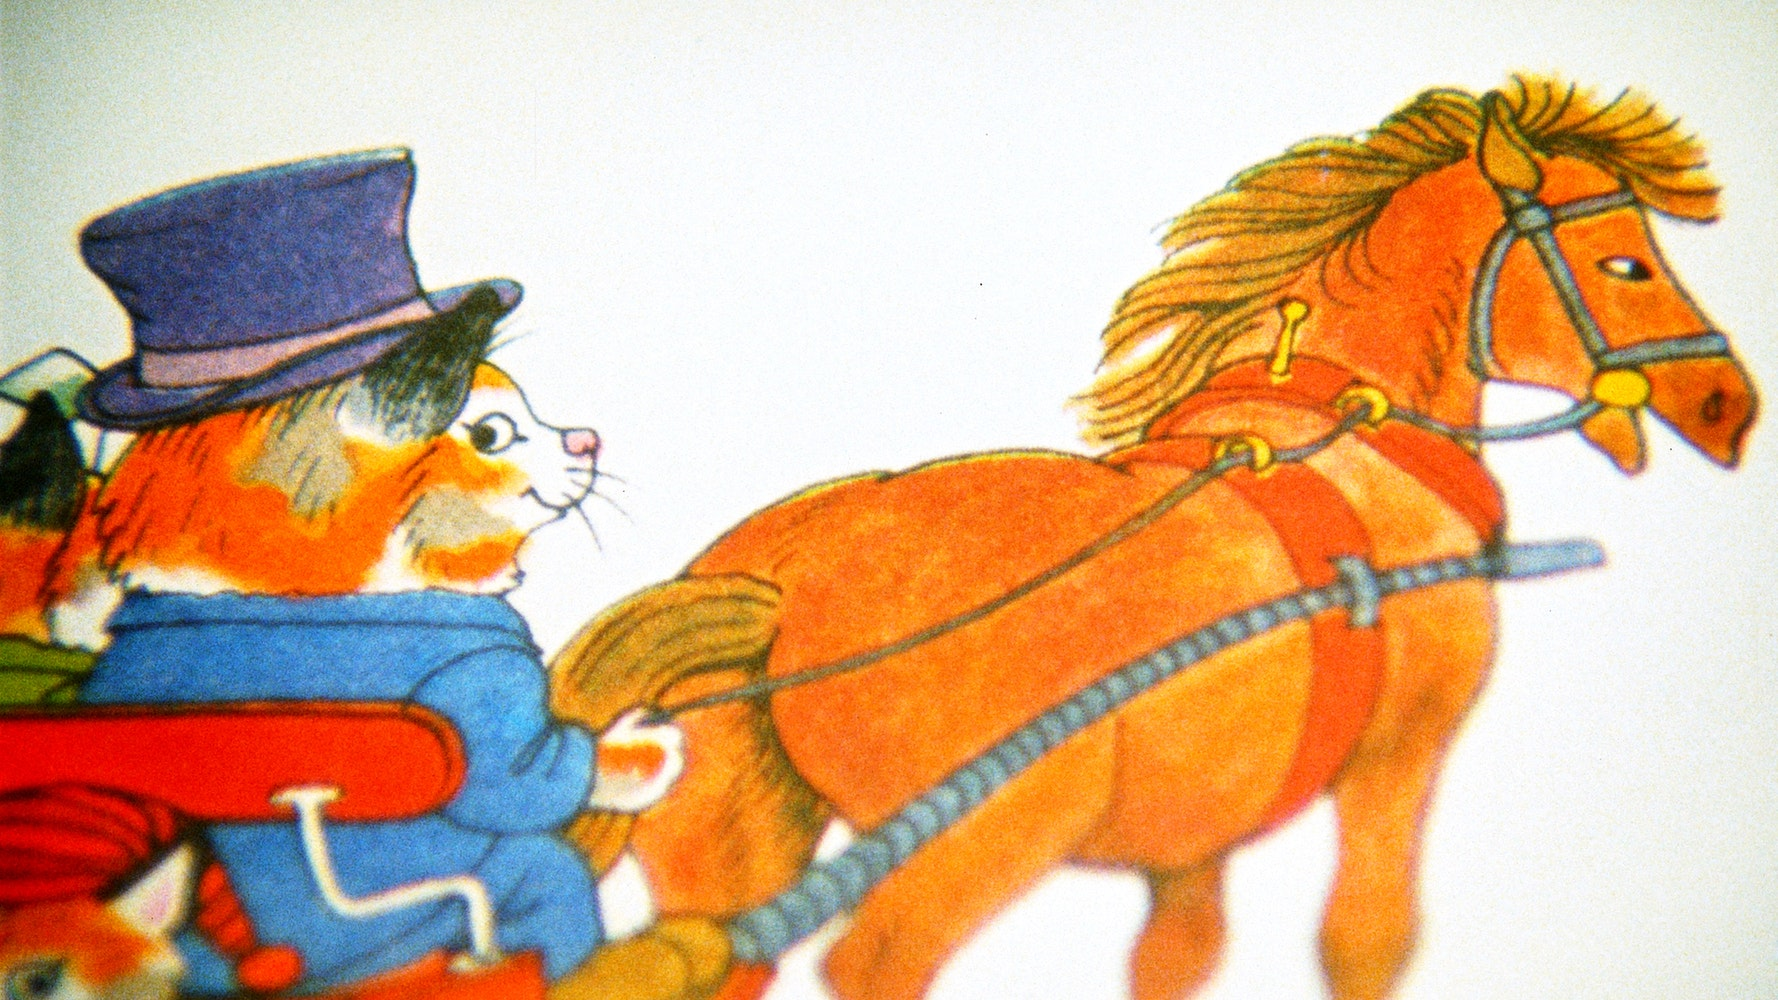 Colorful illustration of a cat in a top hat steering a horse-drawn carriage